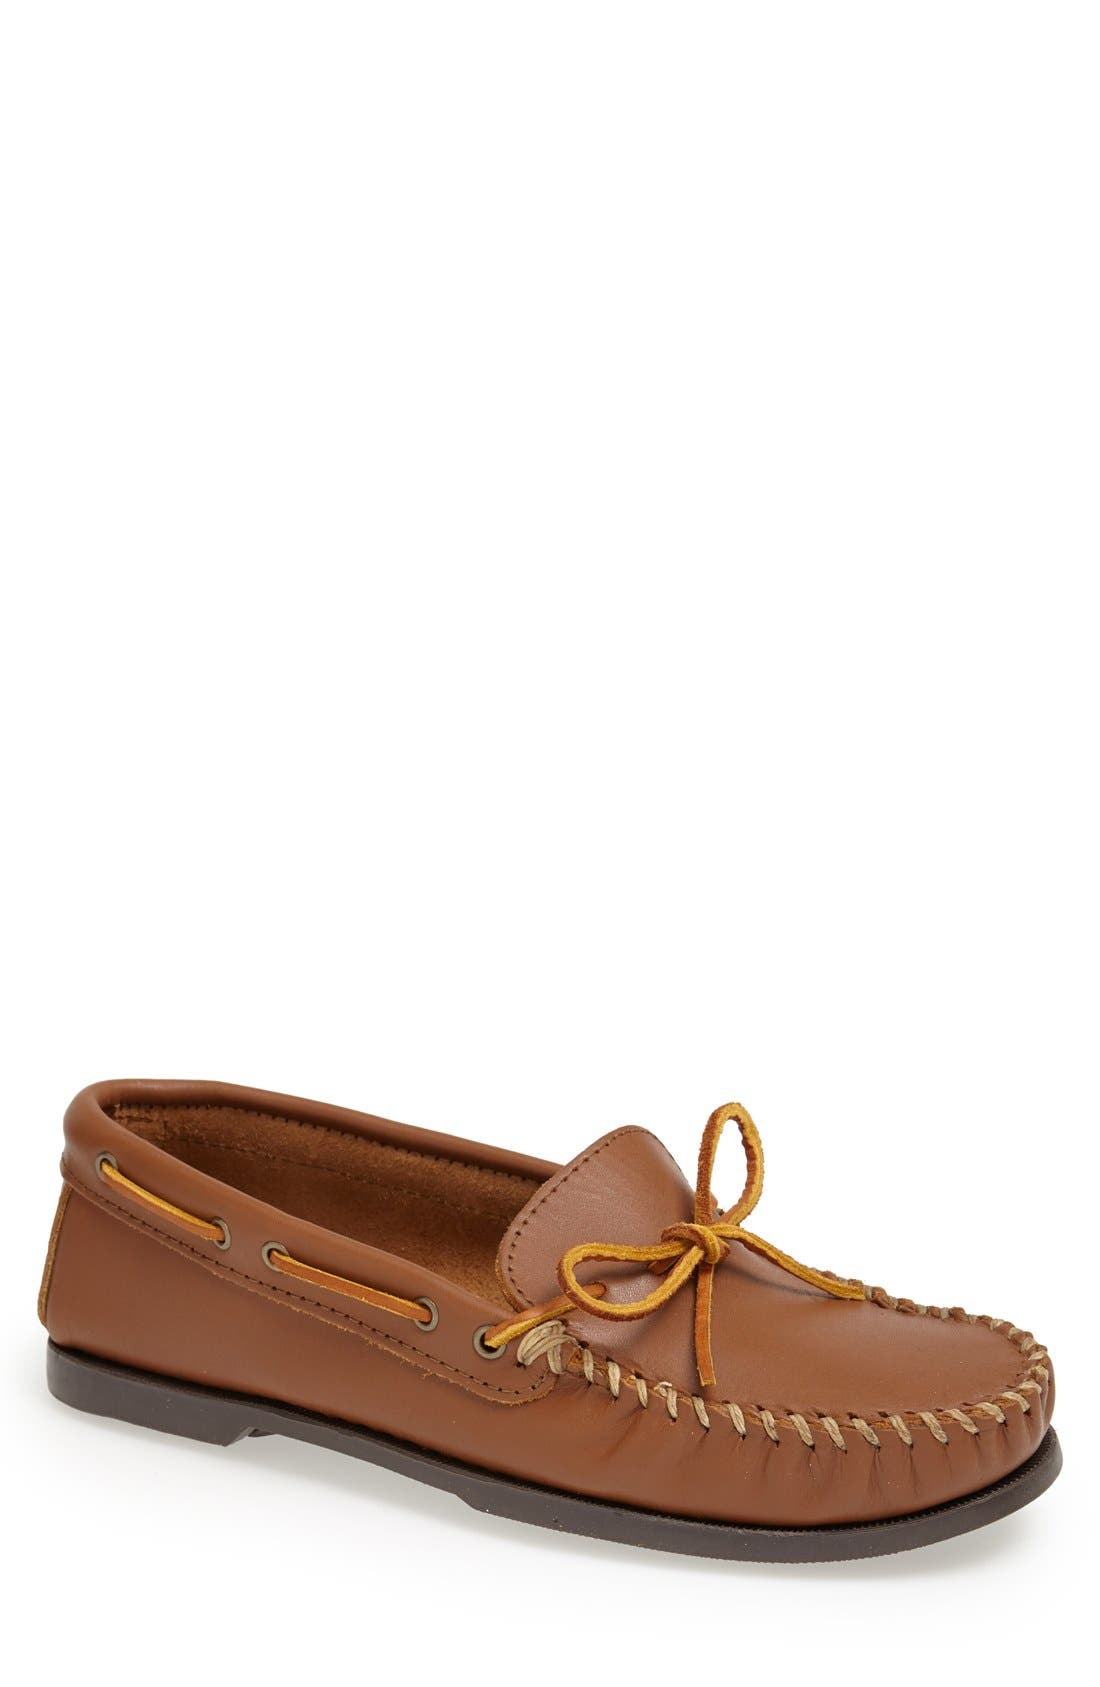 Leather Camp Moccasin,                         Main,                         color, Maple